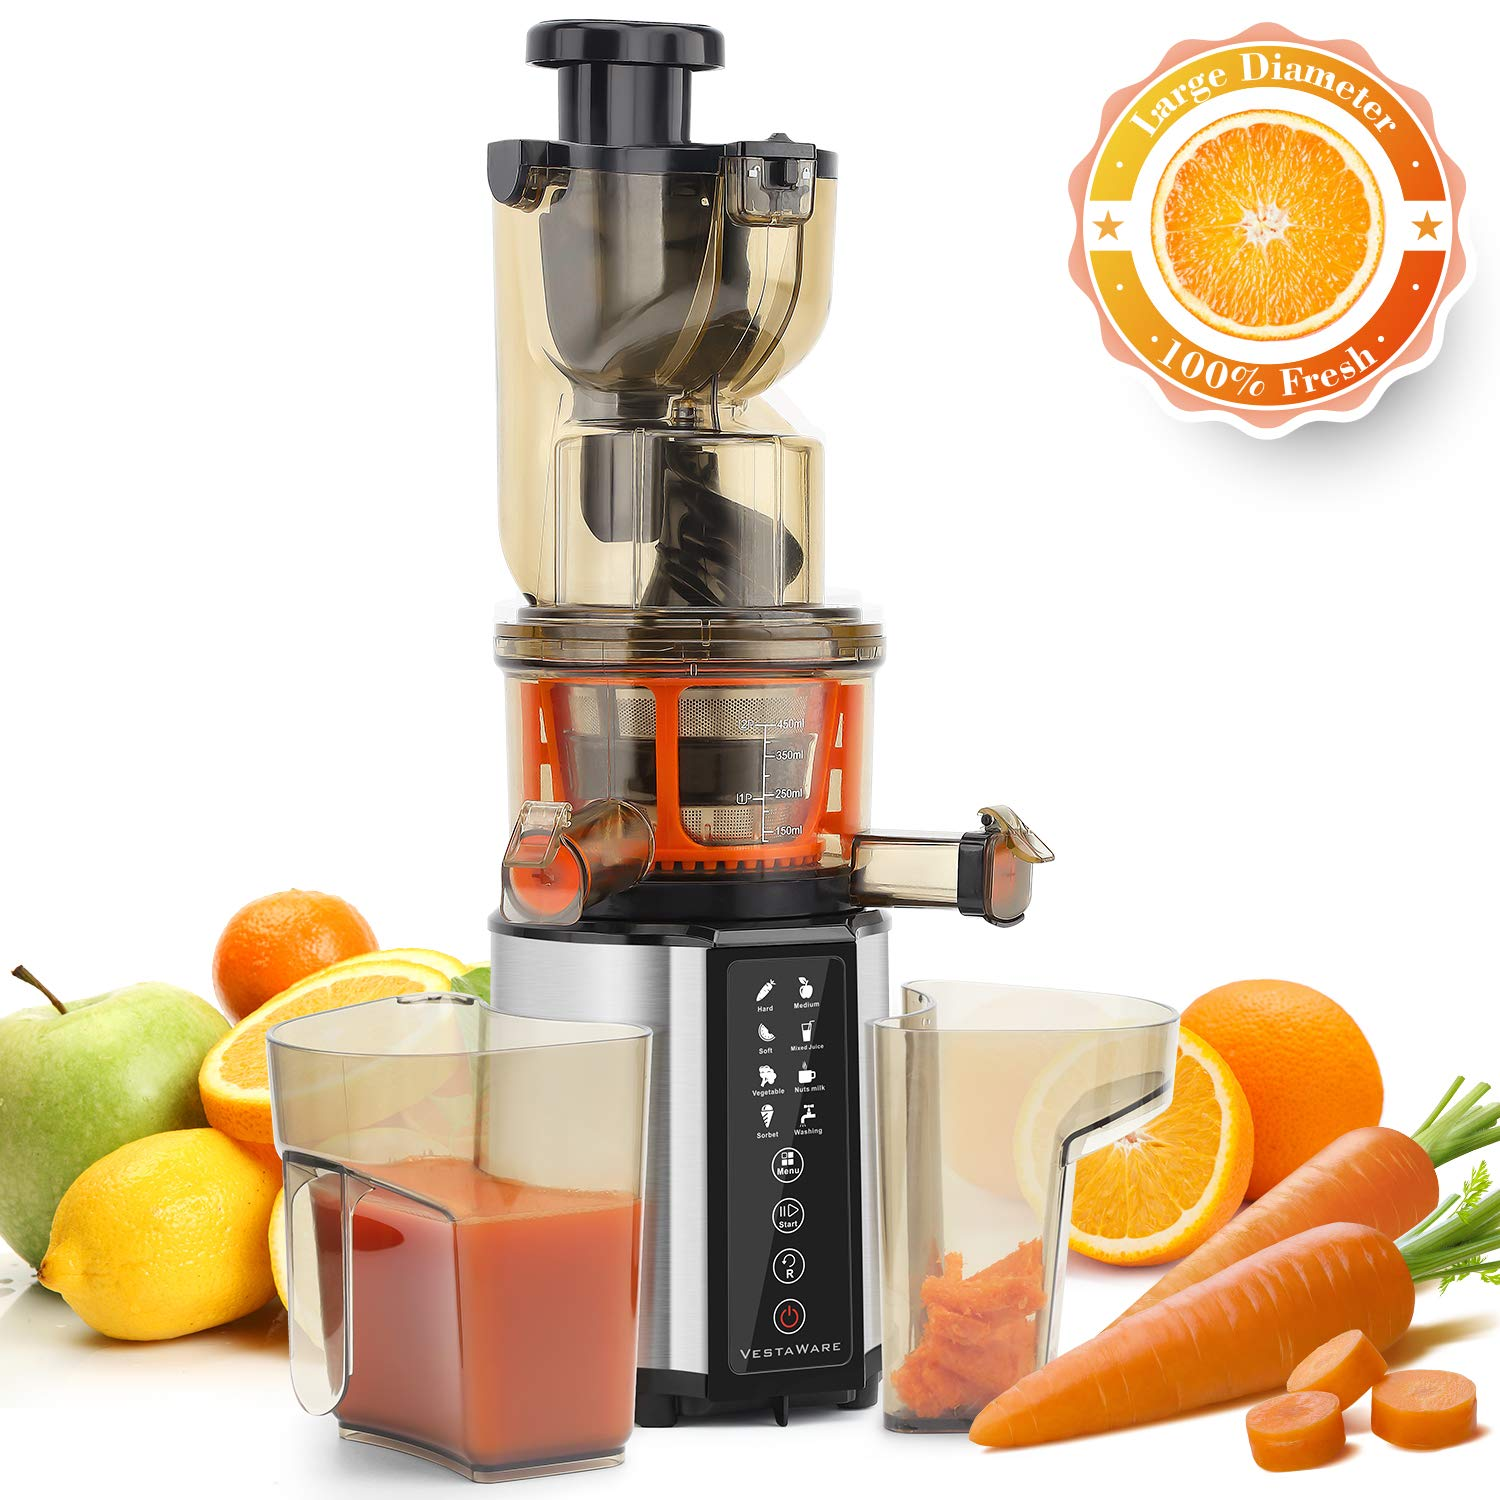 Juicer Machines, Vestaware Slow Masticating Juicer Extractor with Digital Control Panel, 3-Inch Chute Easy to Clean BPA Free Cold Press Juicer for Fruit and Vegetable, Free Juice Recipes, Silver by Vestaware